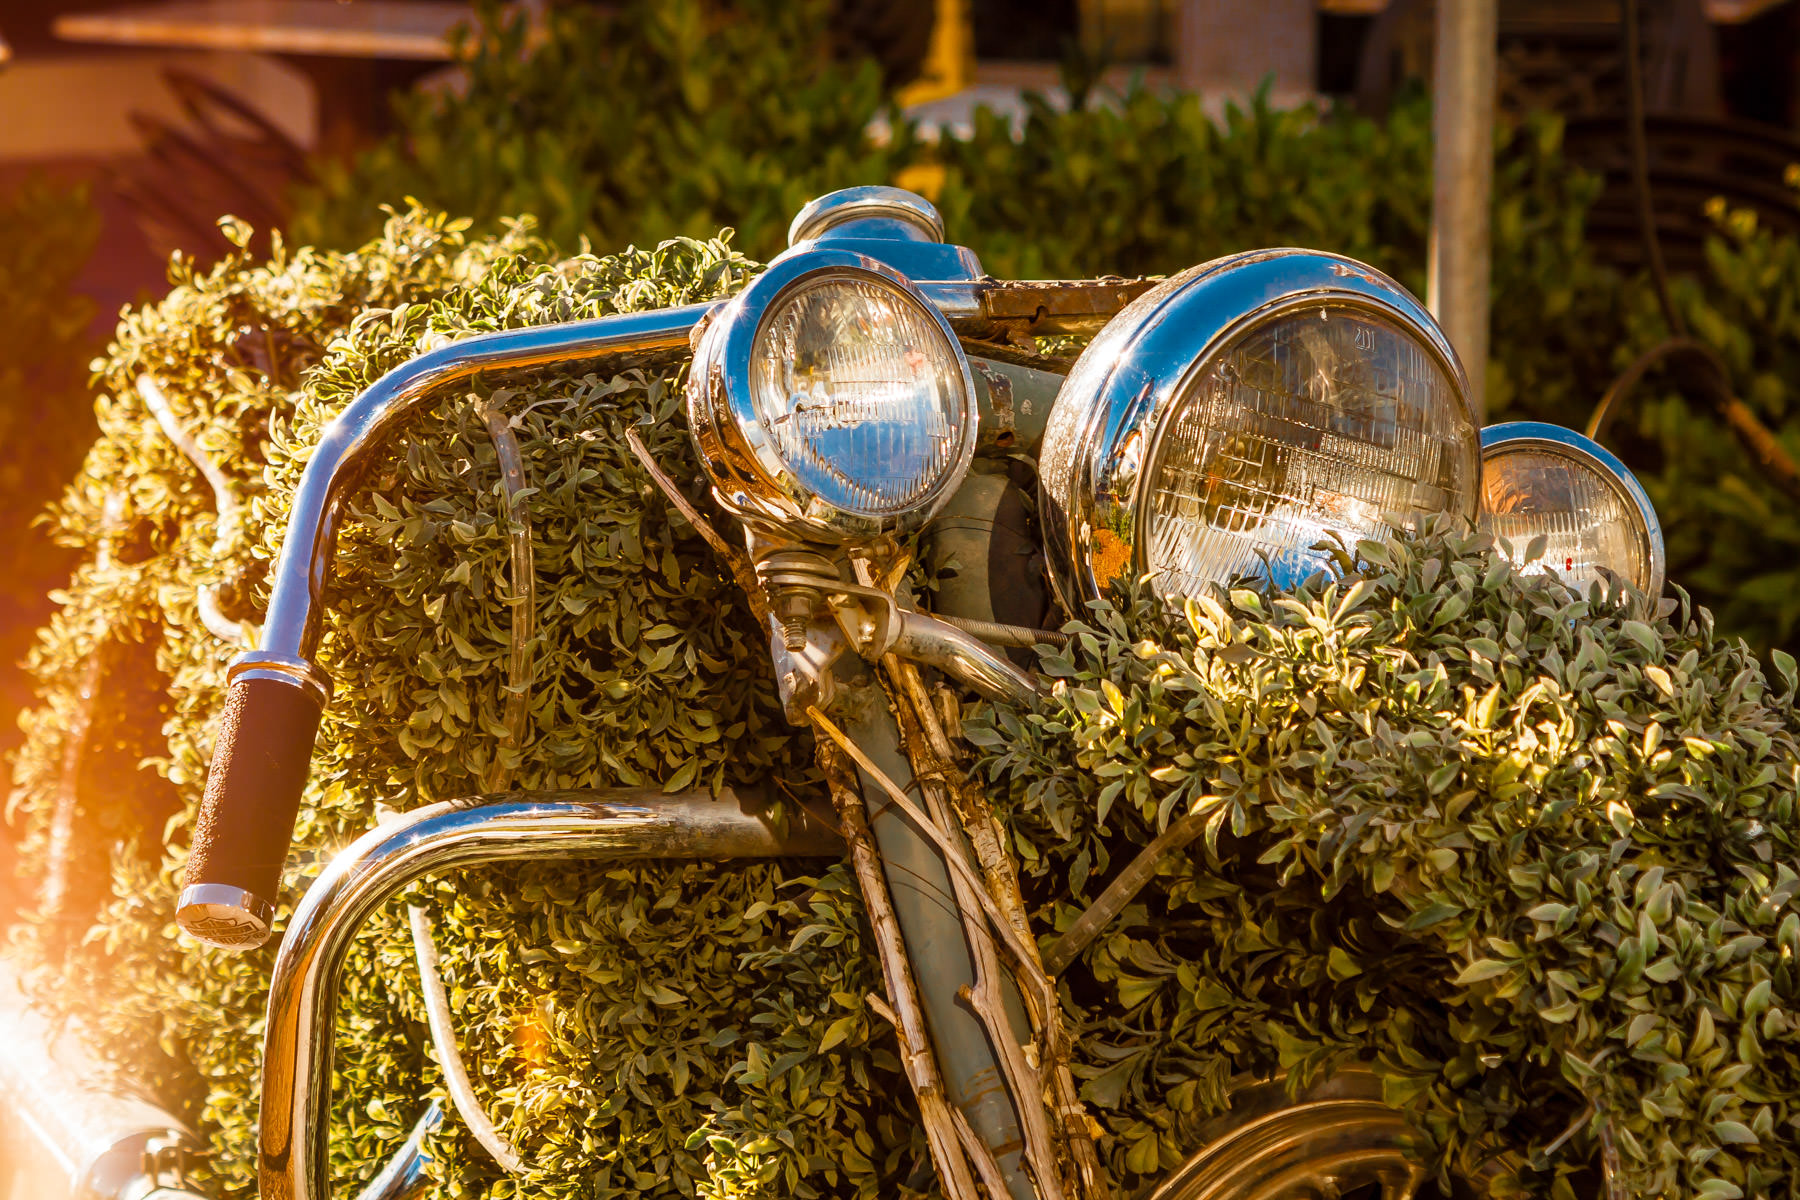 A motorcycle covered with vines at the Harley-Davidson Bar and Grill, Las Vegas.